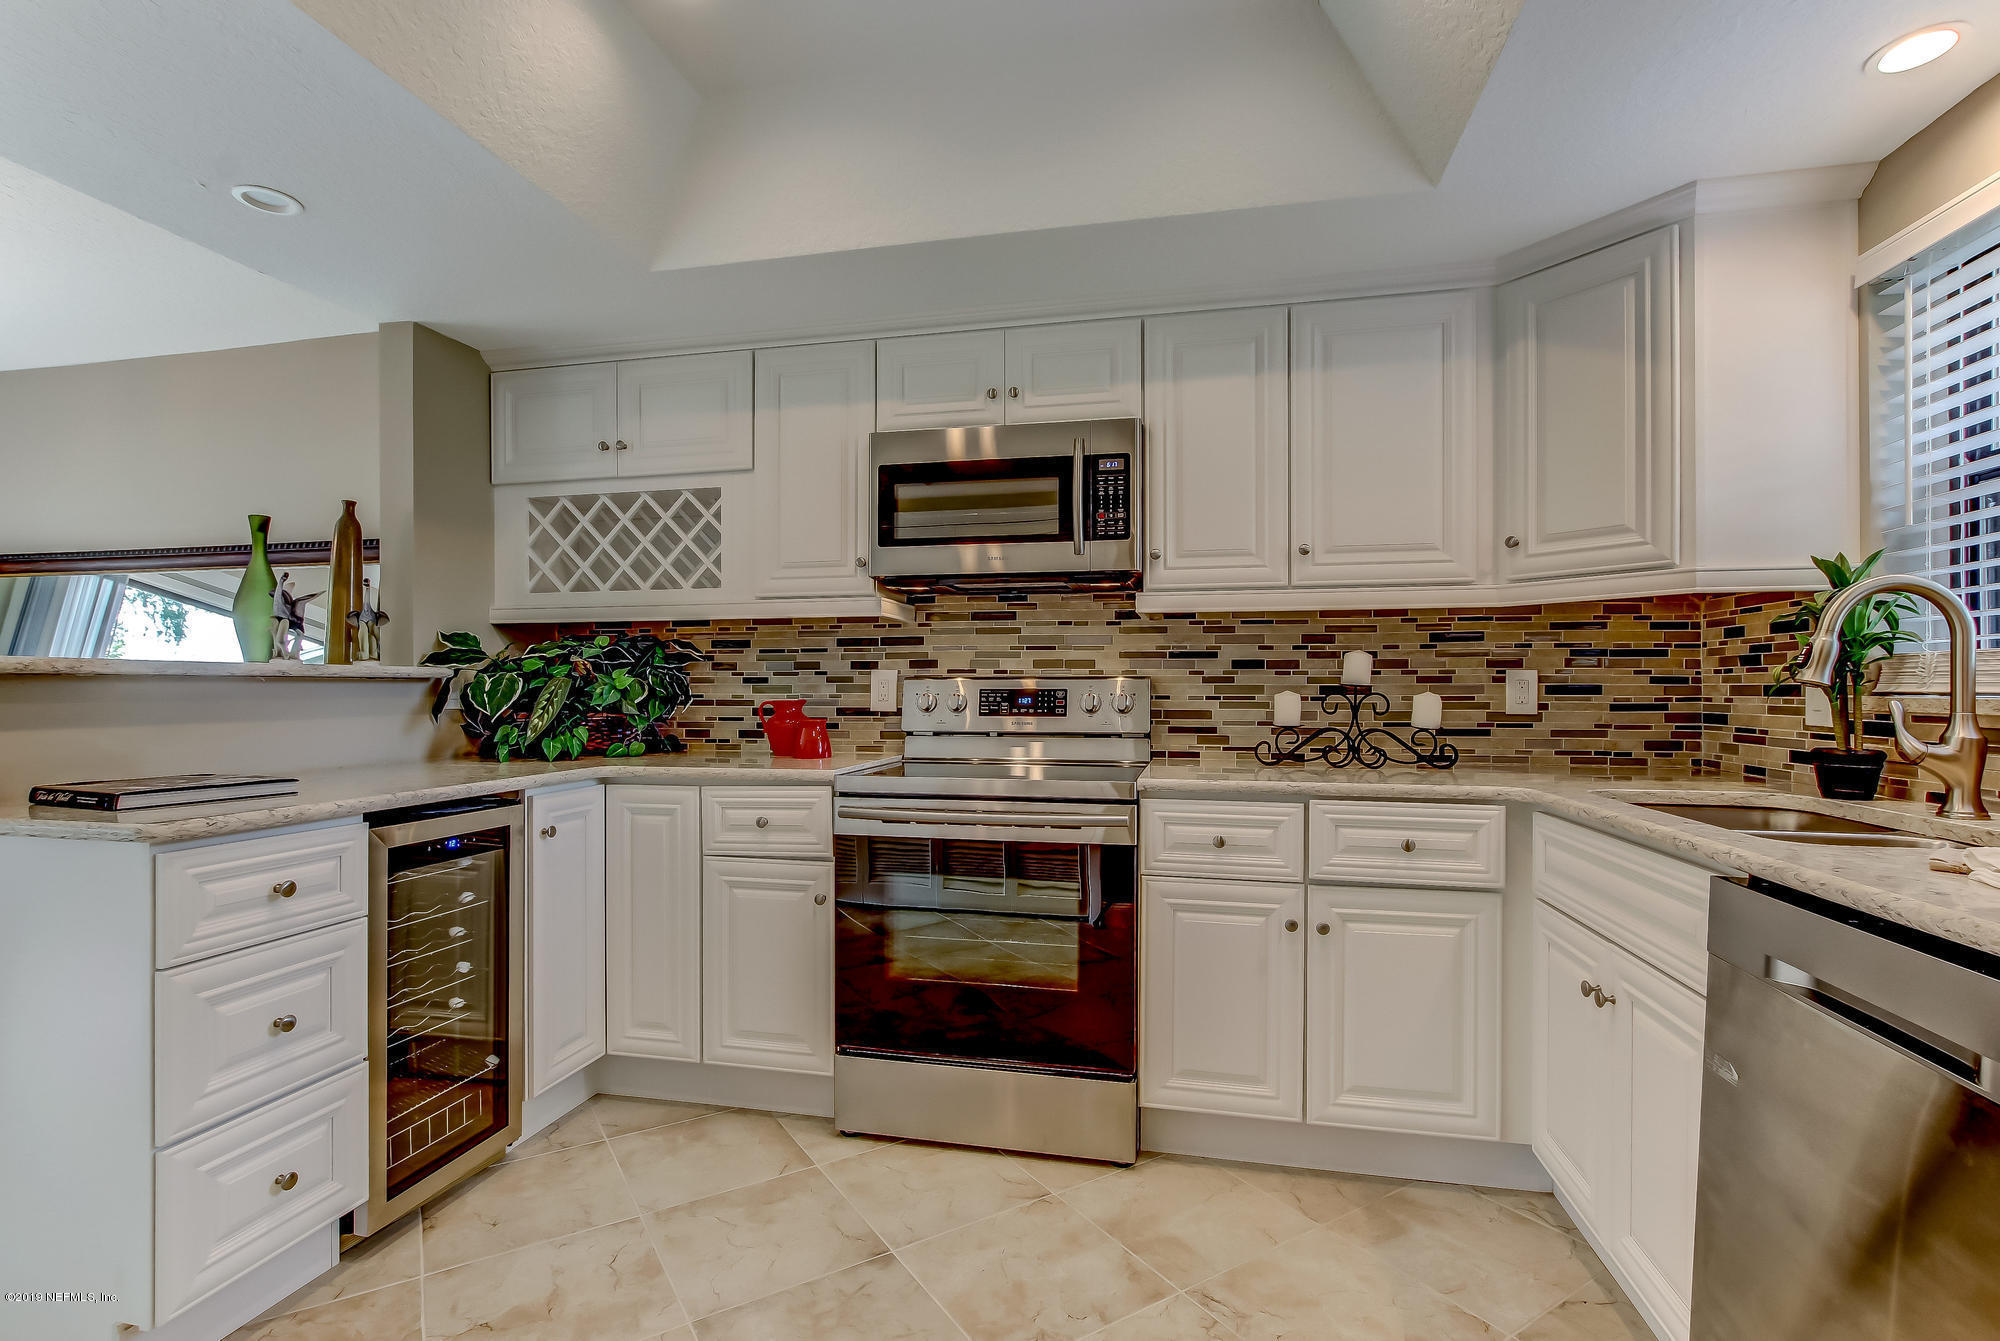 10135 LEISURE, JACKSONVILLE, FLORIDA 32256, 2 Bedrooms Bedrooms, ,2 BathroomsBathrooms,Residential - condos/townhomes,For sale,LEISURE,999522